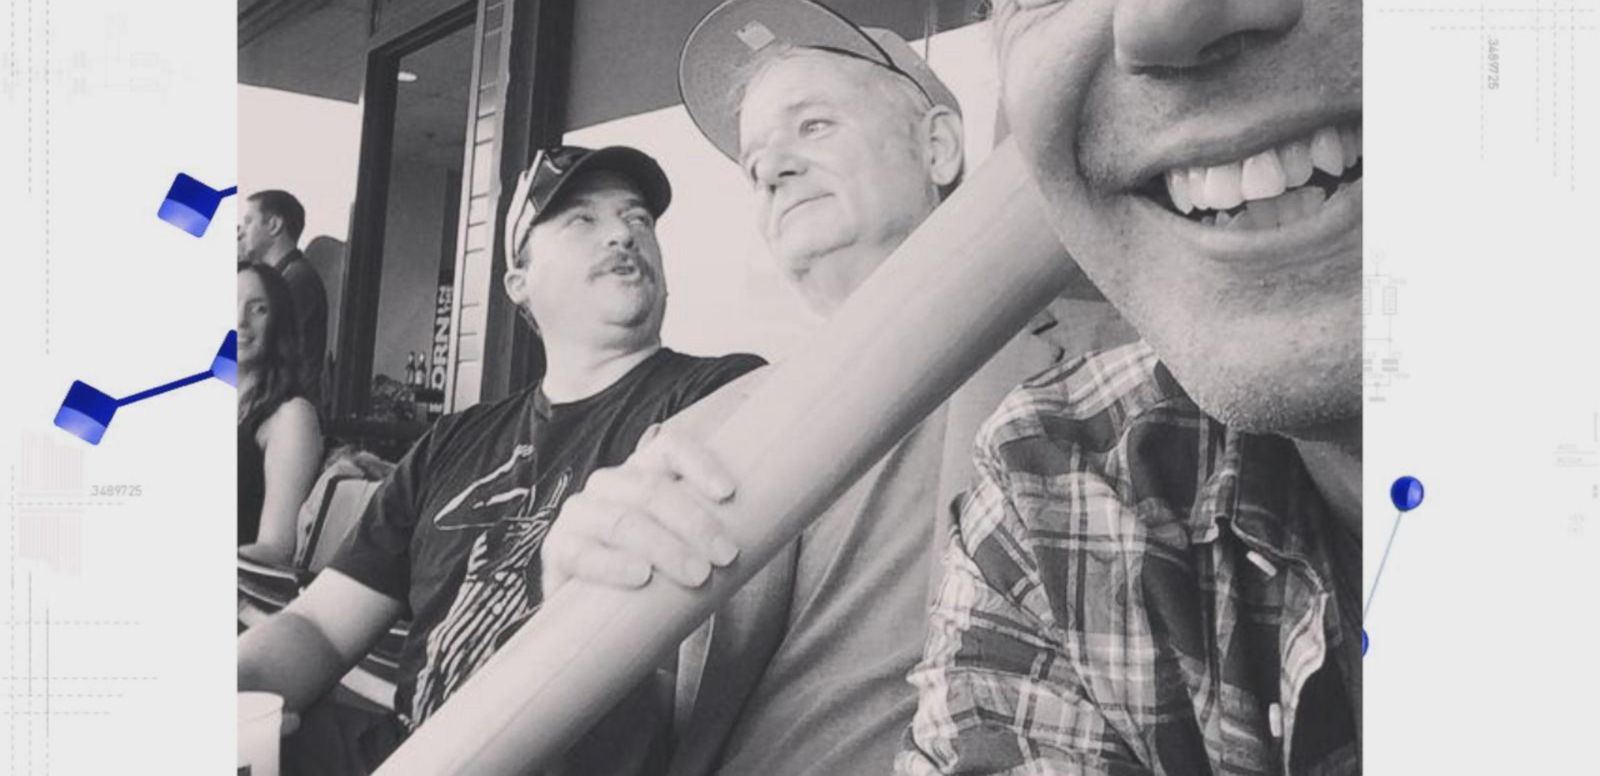 VIDEO: Bill Murray, Anthony Bourdain and Danny McBride Bro Out at the Ballpark